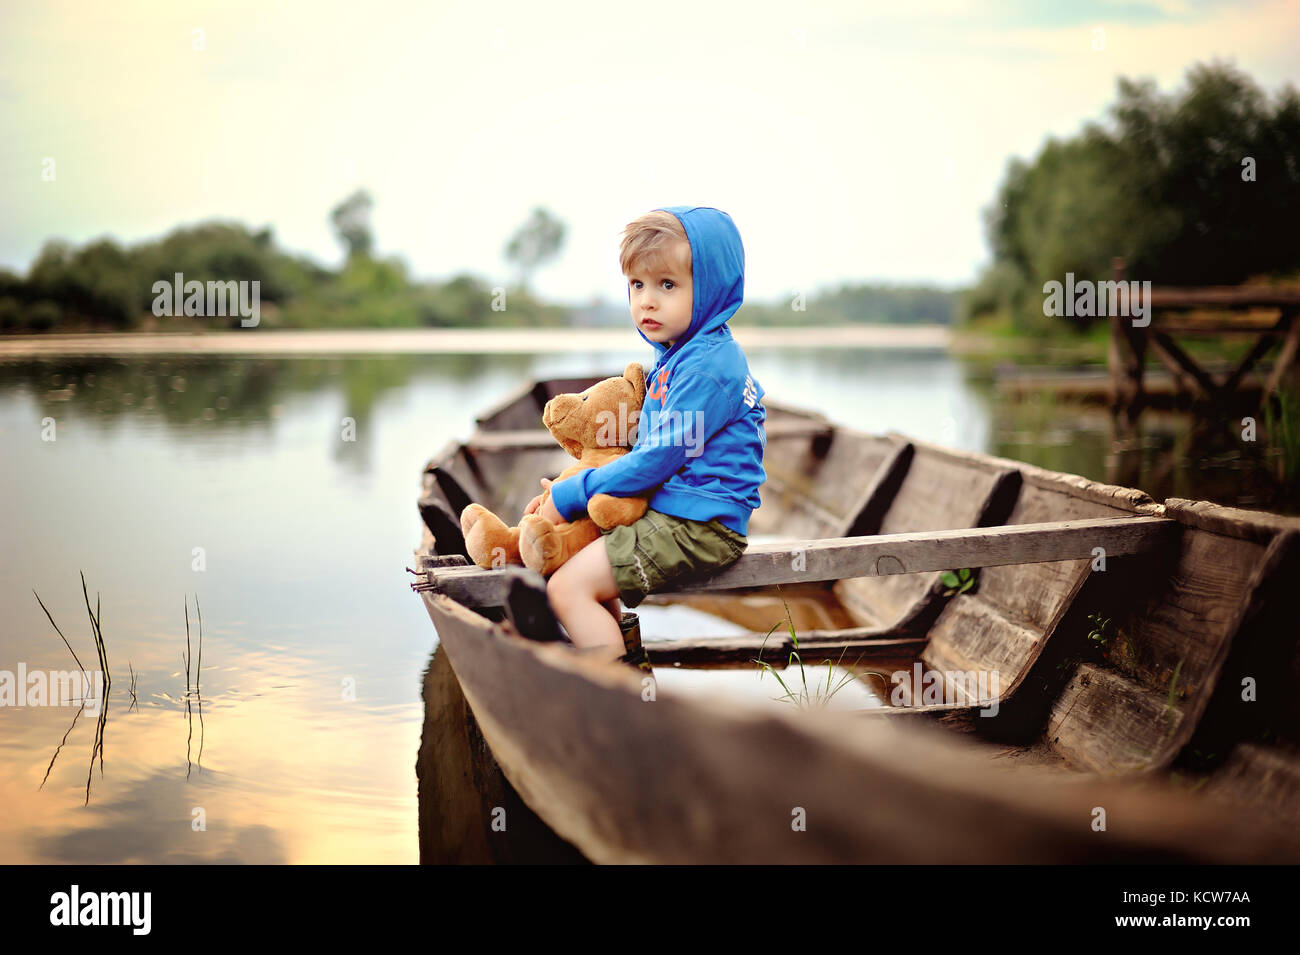 A small, pensive boy in a blue hooded sweater sits on wooded boot with  teddy bear - Stock Image